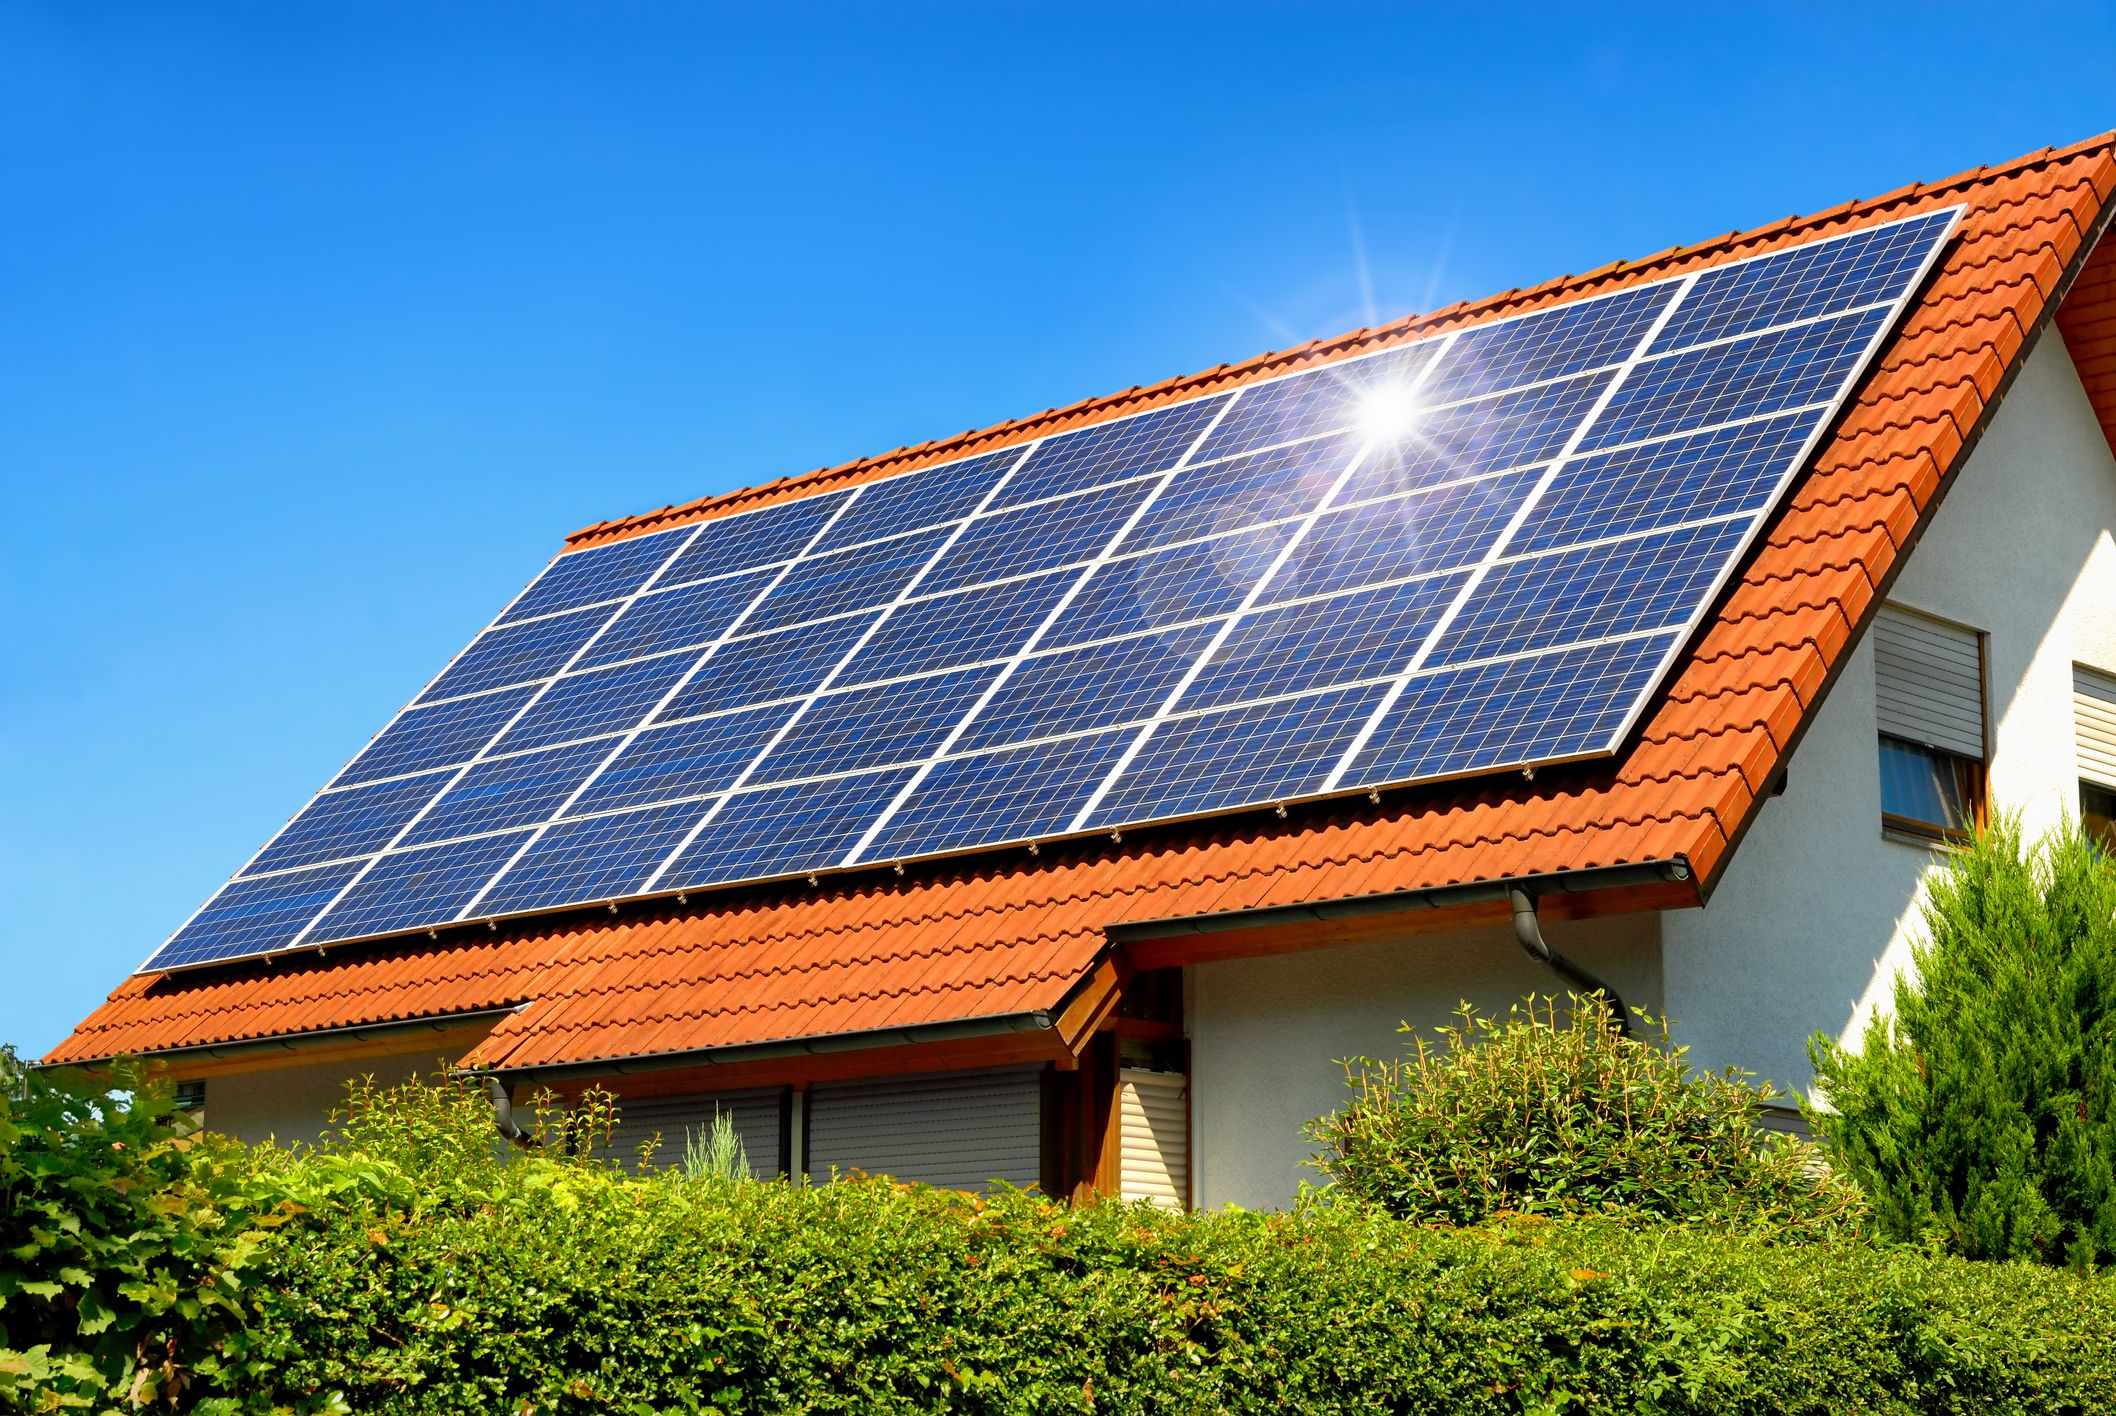 Solar Factories In Pakistan In 2020 Solar Panel Cost Solar Energy Panels Photovoltaic System